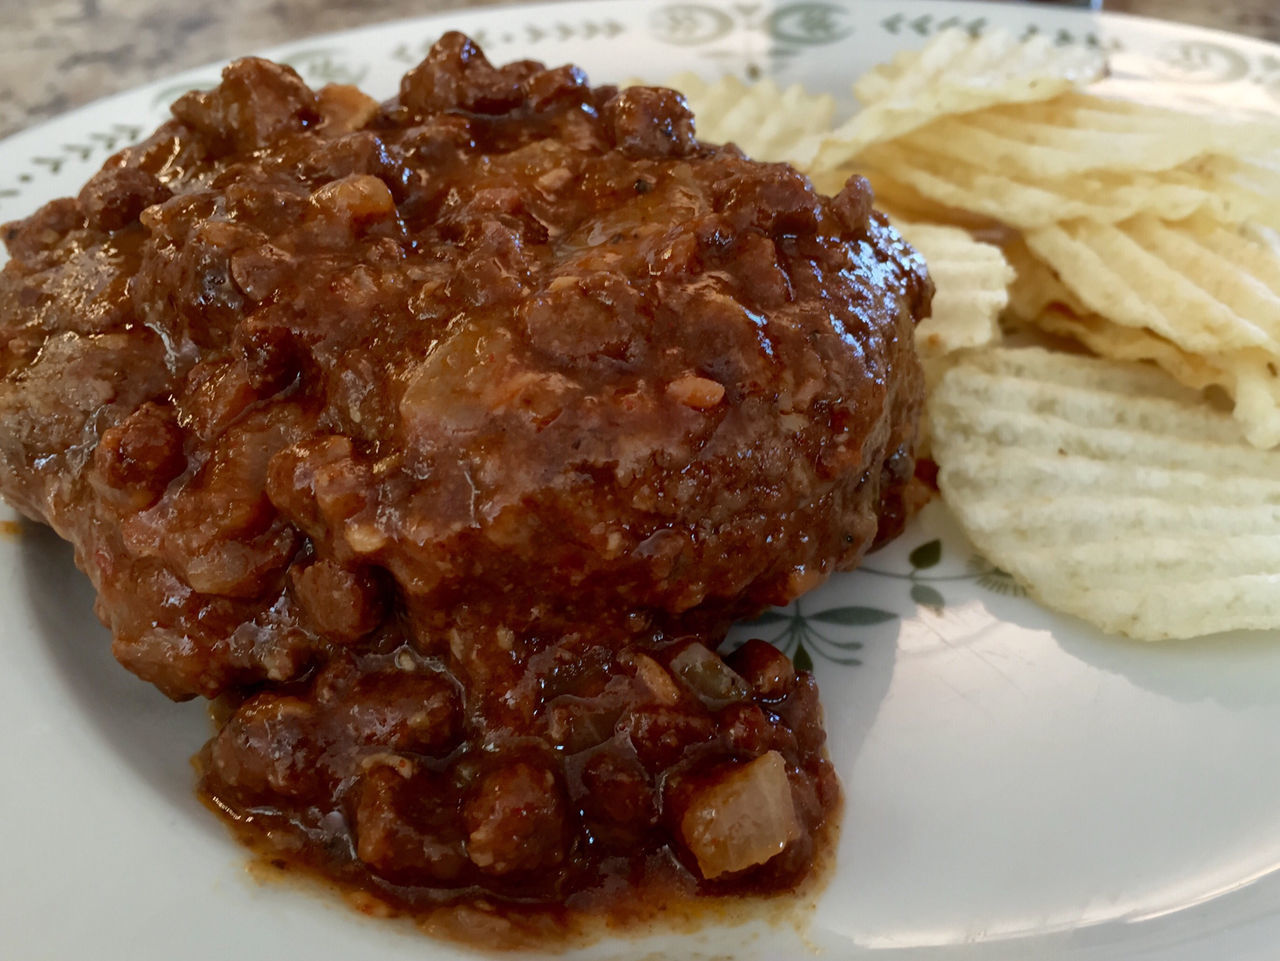 Hamburger steak topped with chili Chili  Close-up Focus On Foreground Food Freshness Hamburger Hamburger Steak Indulgence Meal No People Plate Ready-to-eat Selective Focus Served Serving Size Snack Still Life Temptation